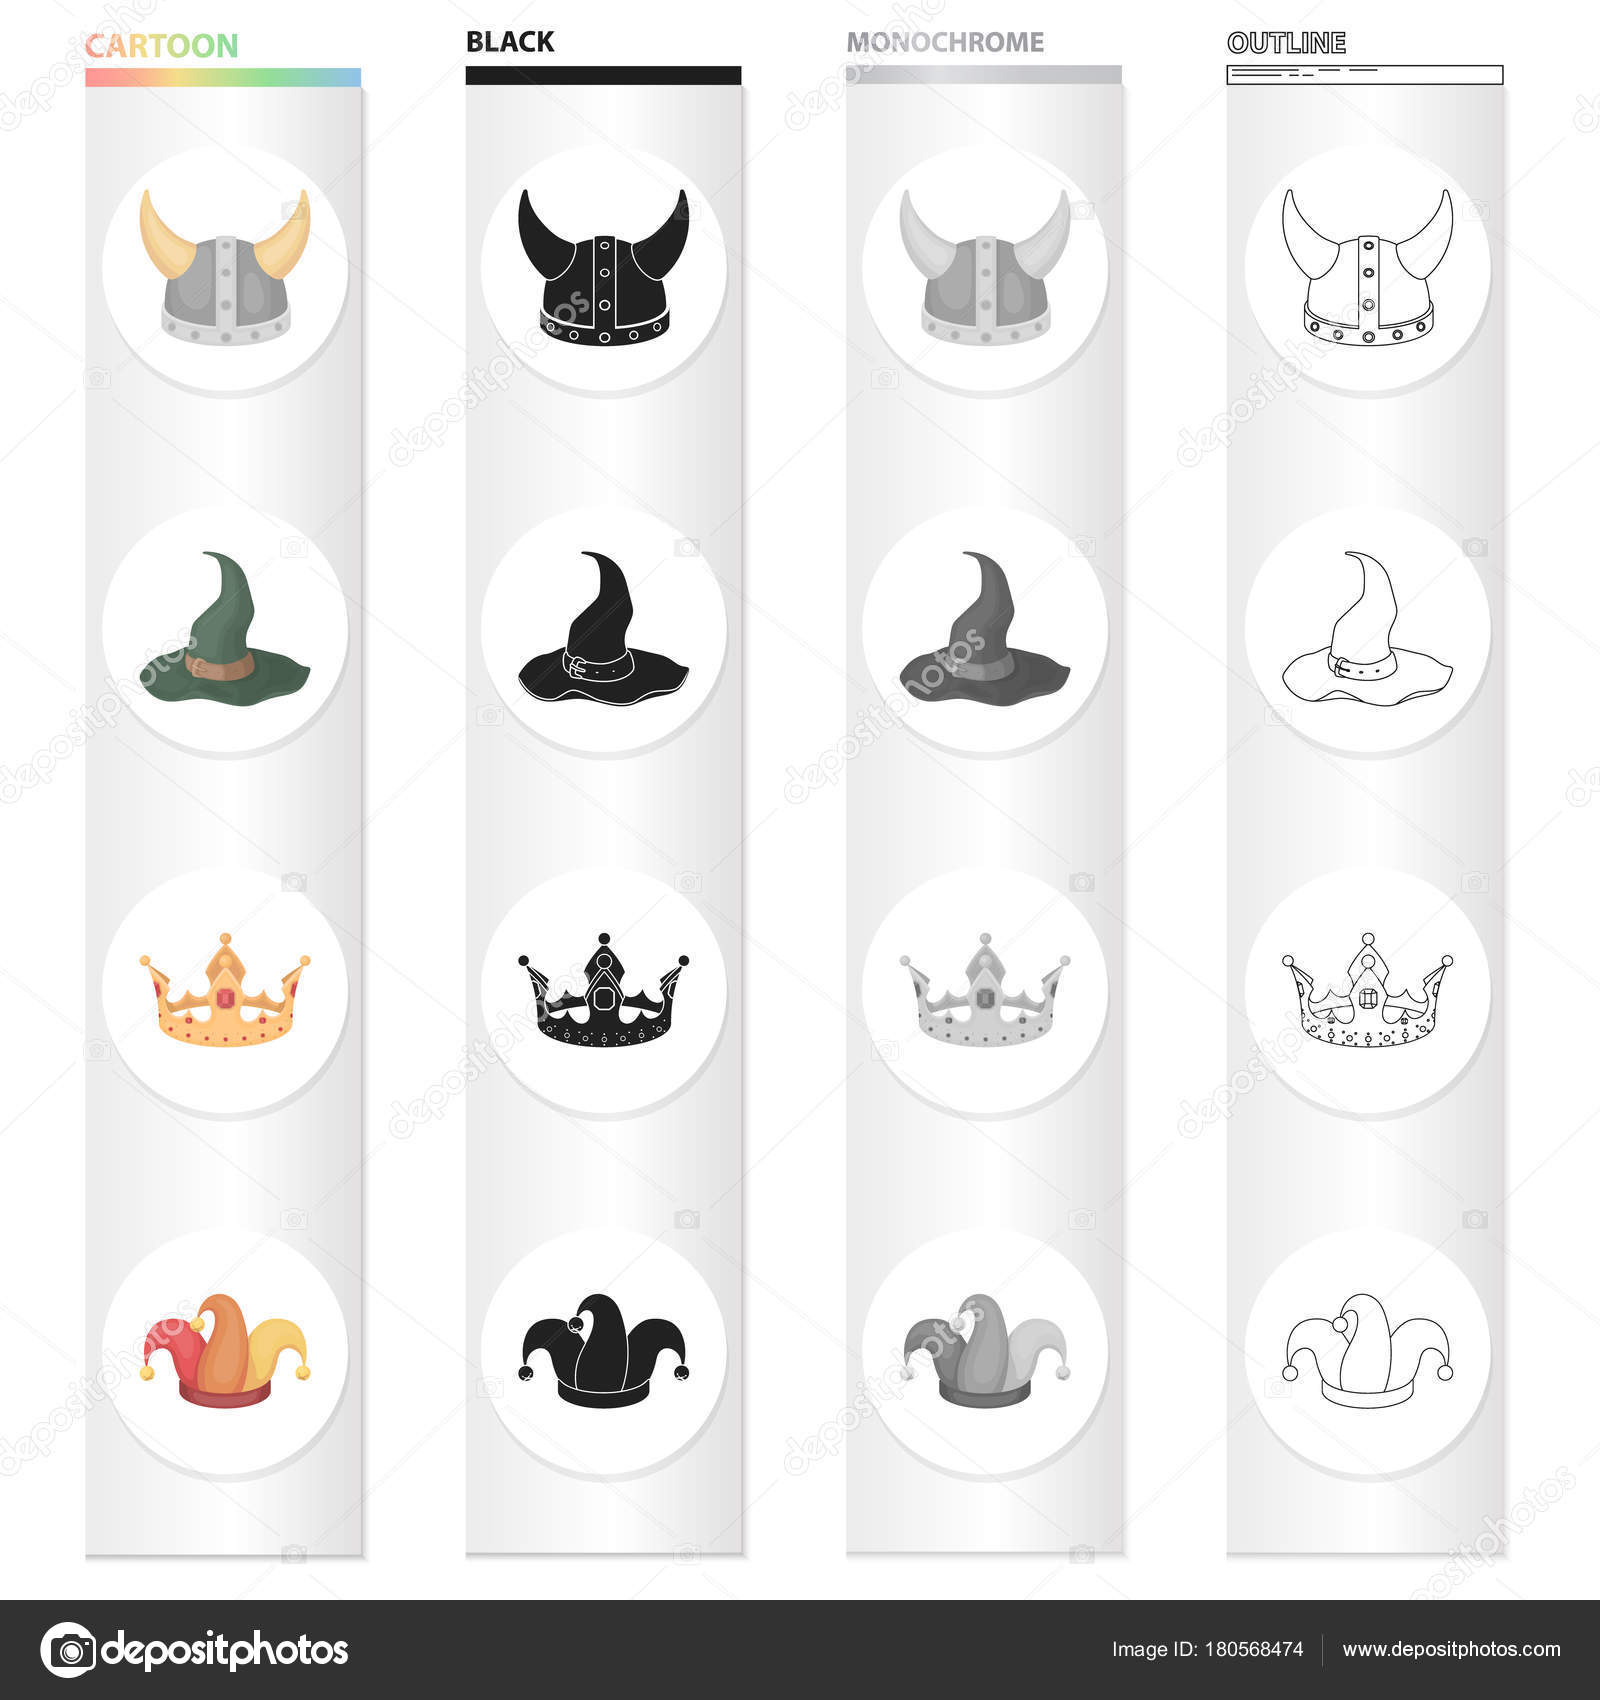 Viking Helmet Wizards Hat Crown Jesters Cap Hats Set Collection Icons In Cartoon Black Monochrome Outline Style Vector Symbol Stock Illustration Web Stock Vector C Pandavector 180568474 Download this premium vector about graduation card with hat and crown, and discover more than 9 million professional graphic resources on freepik. depositphotos